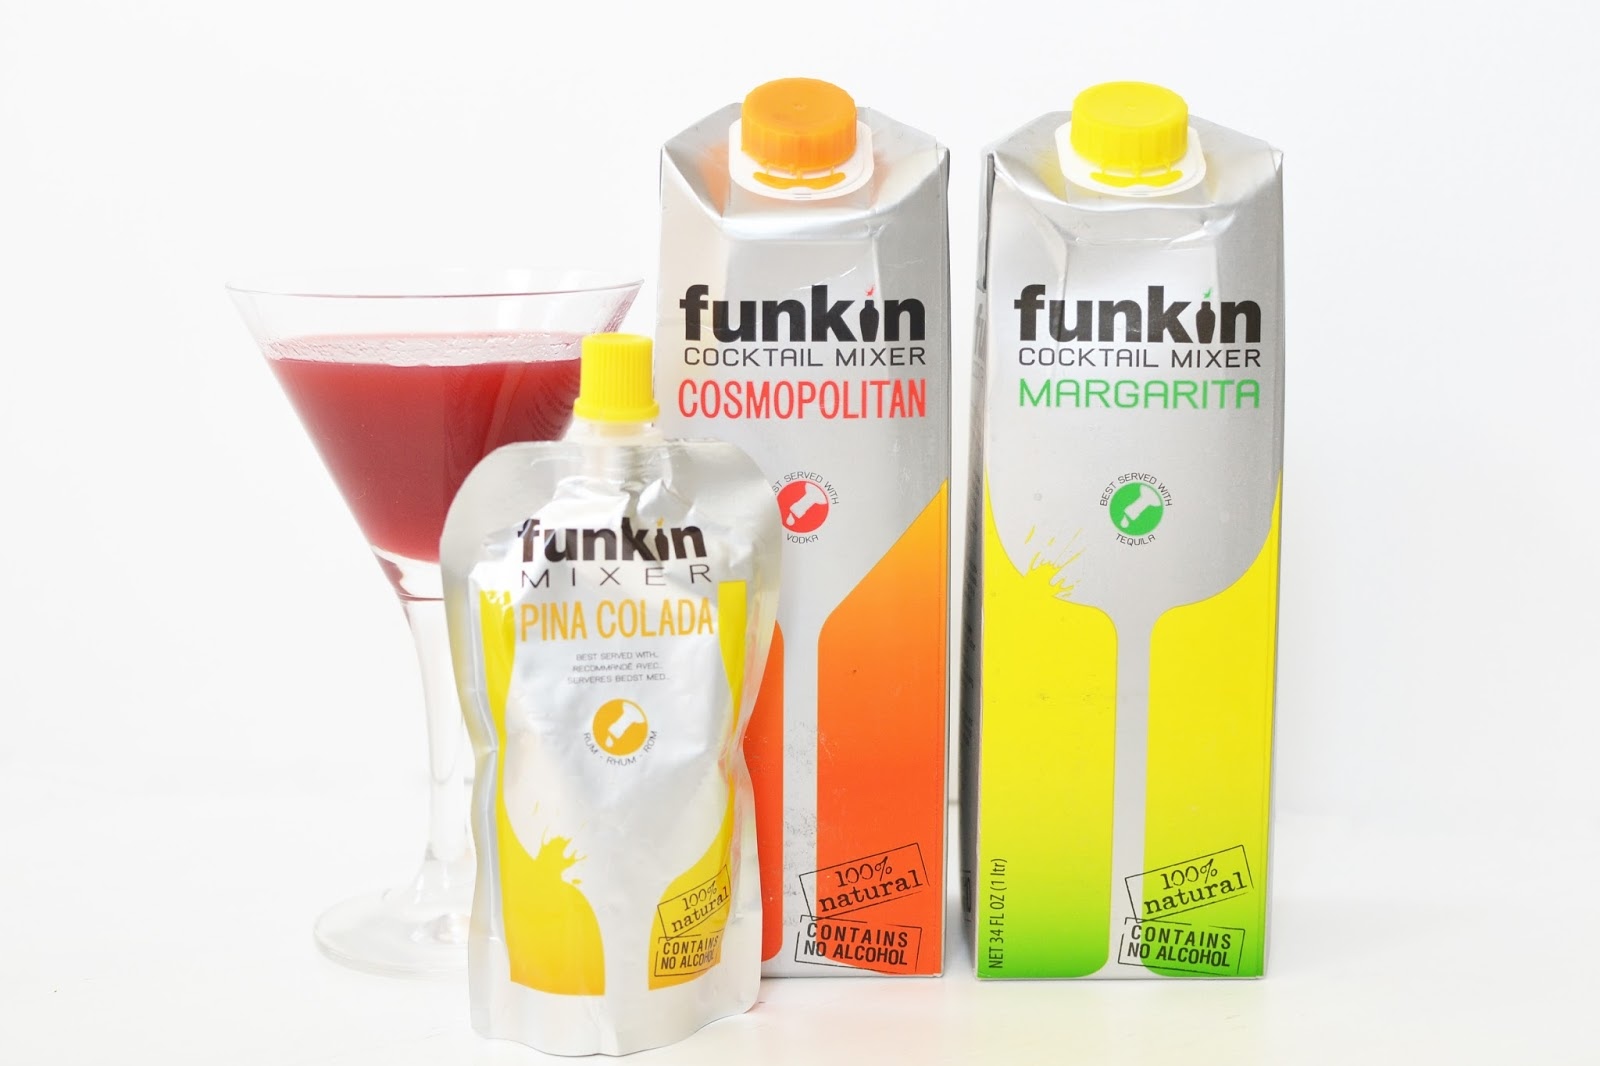 funkin cocktails ready made mixers